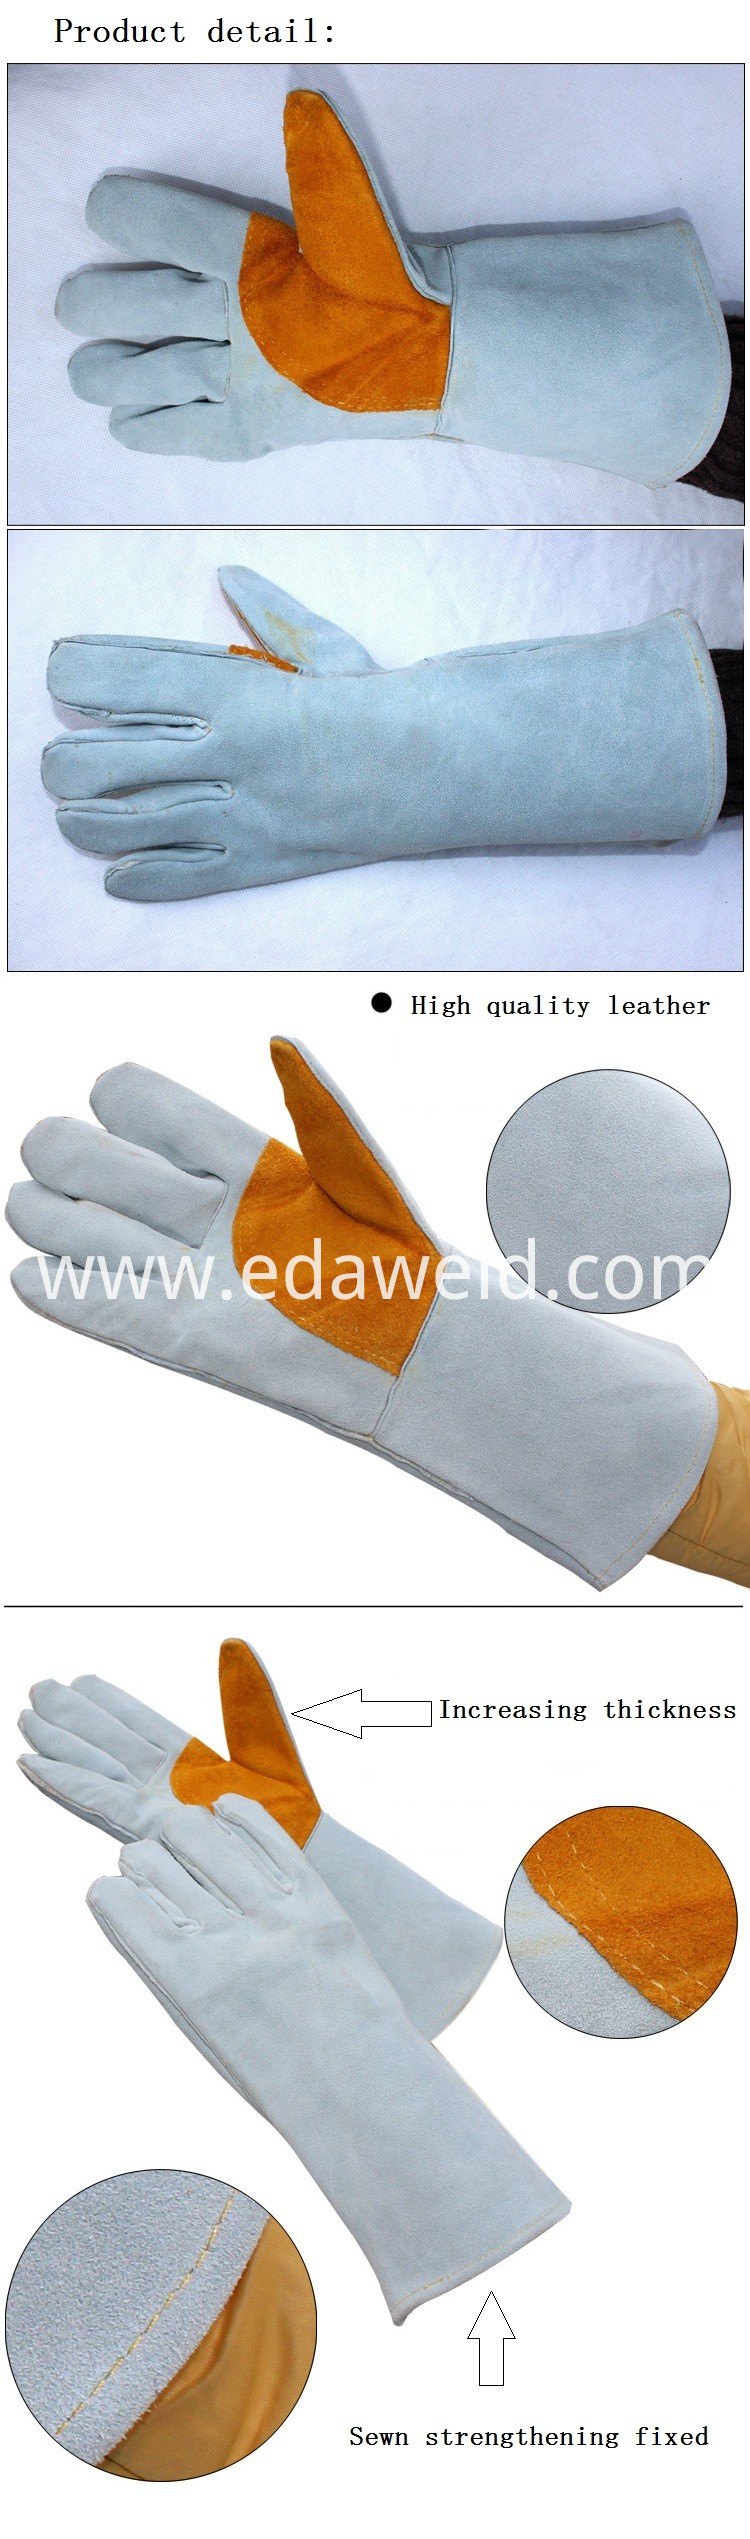 Insulation elding Working Gloves